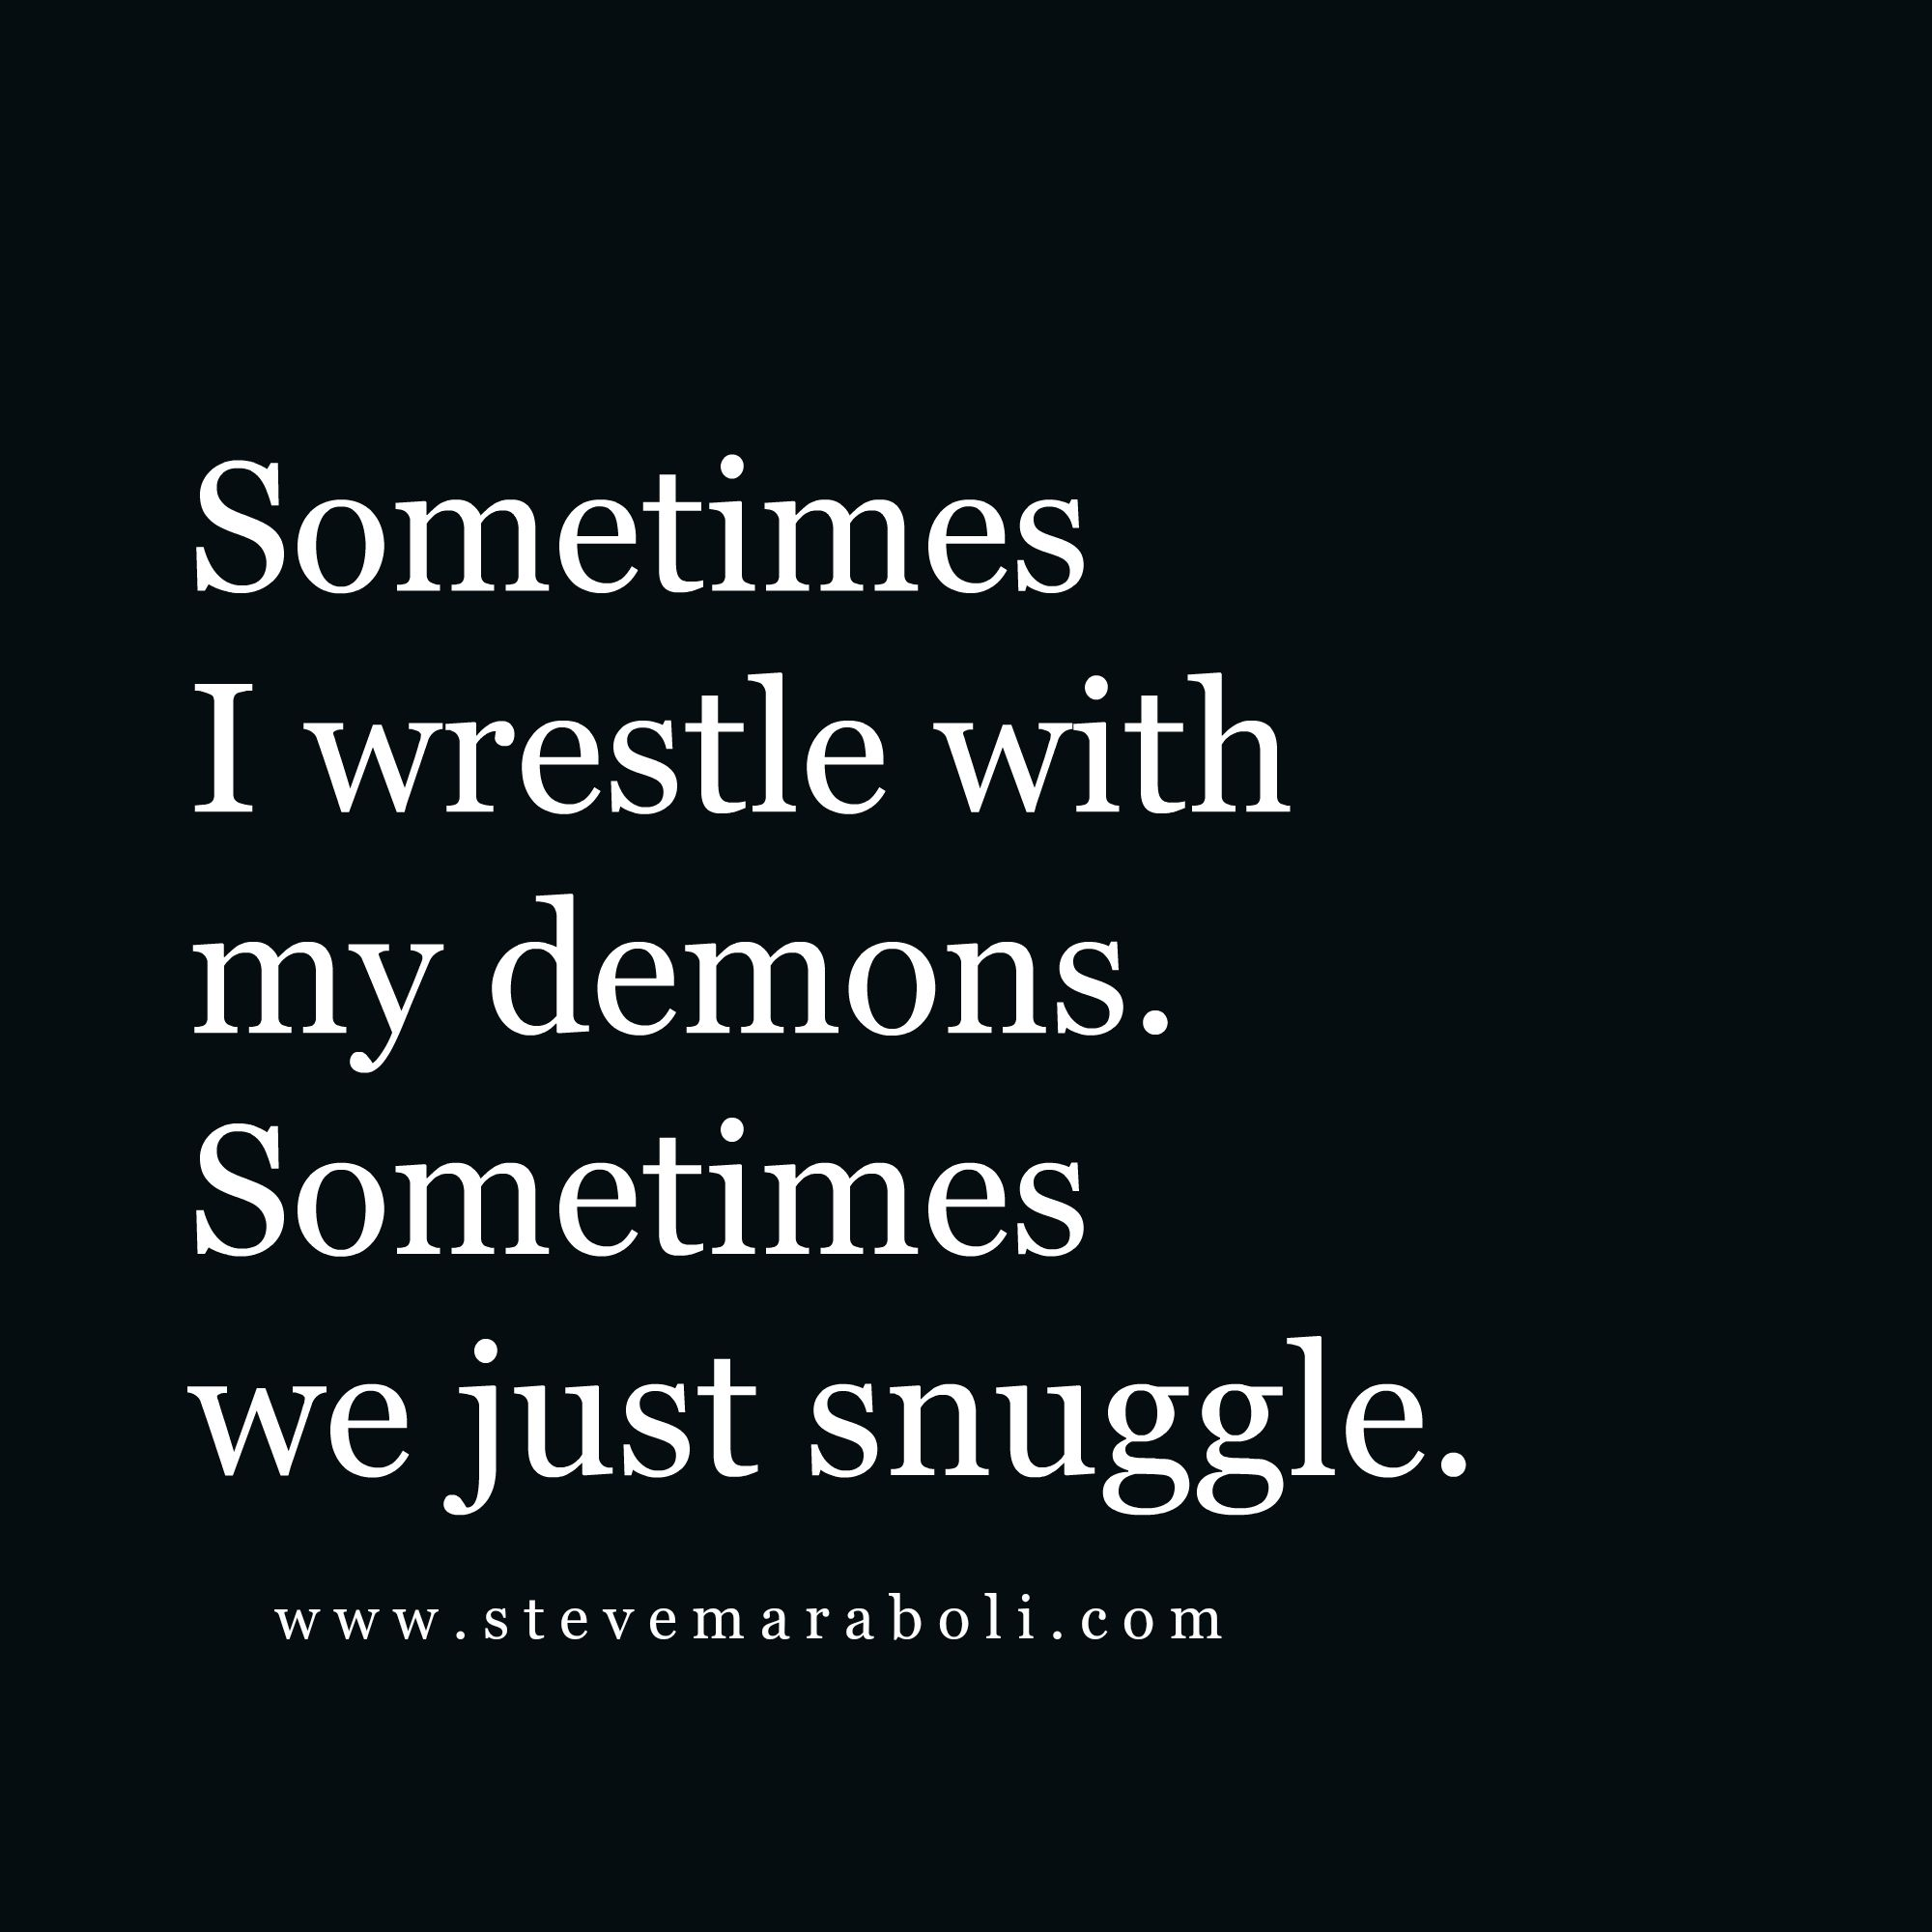 Ww Quotes Sometimes I Wrestle With My Demonssometimes We Just Snuggle